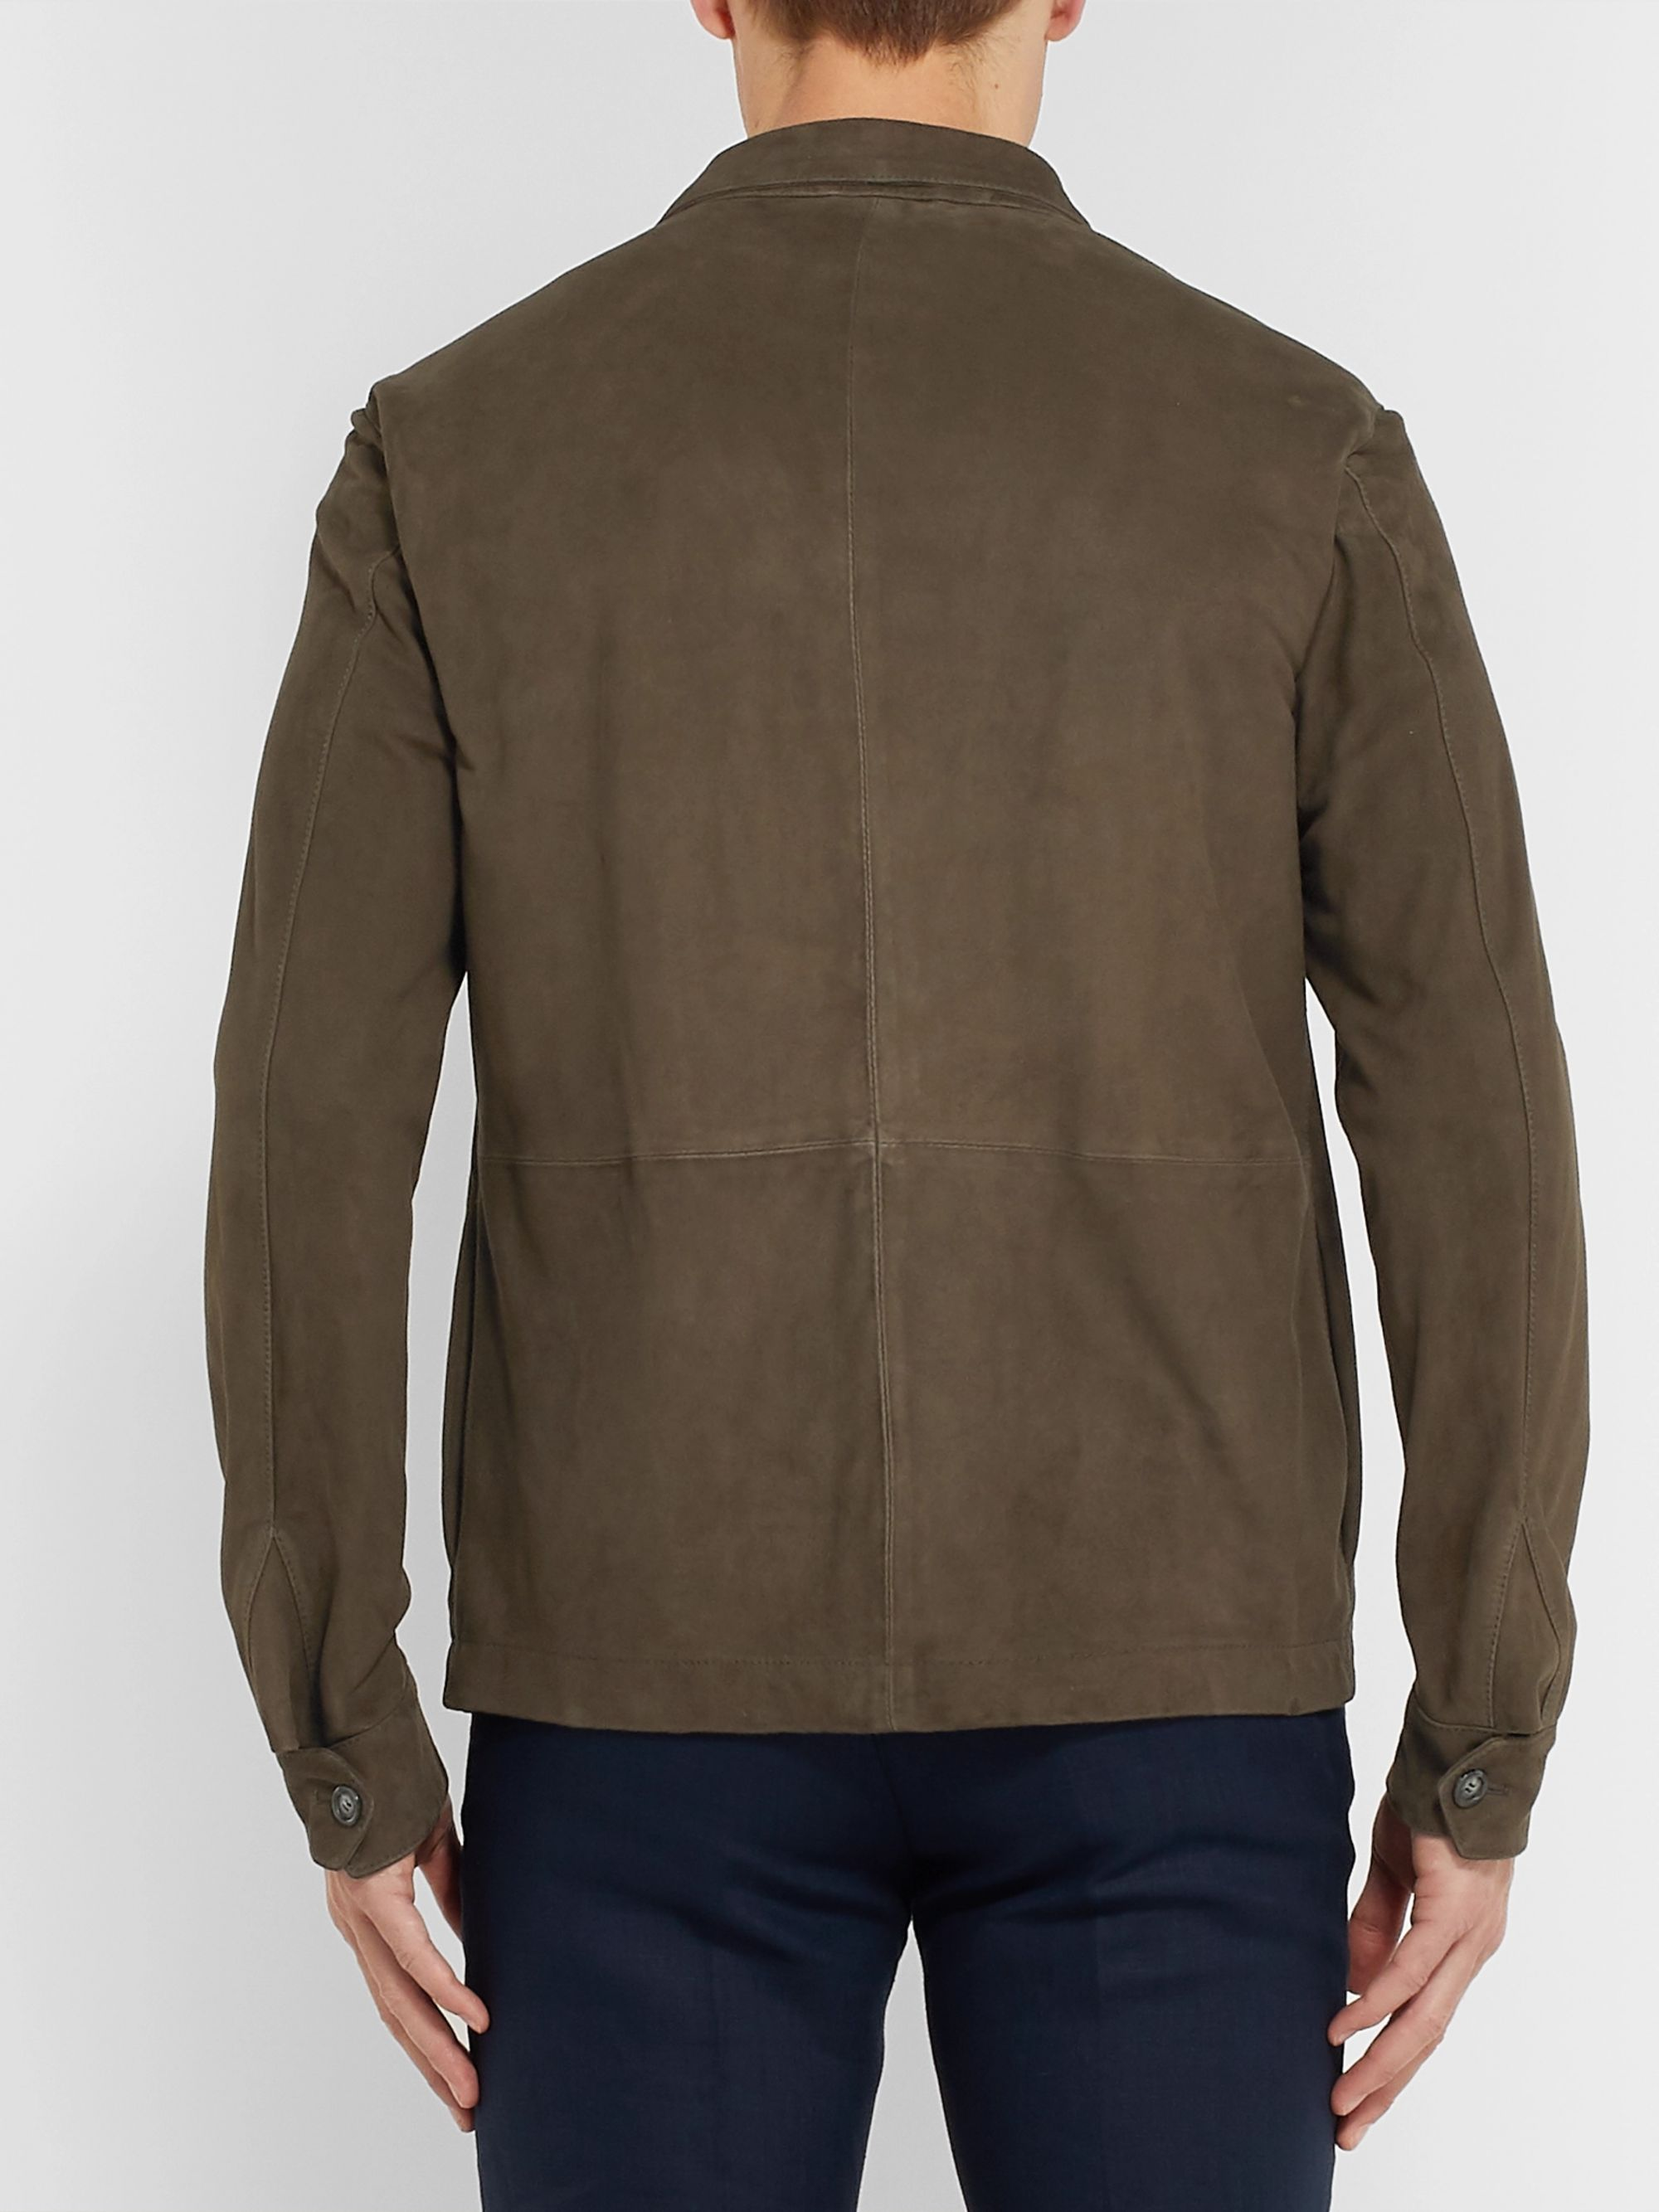 Kingsman Slim-Fit Unlined Suede Jacket